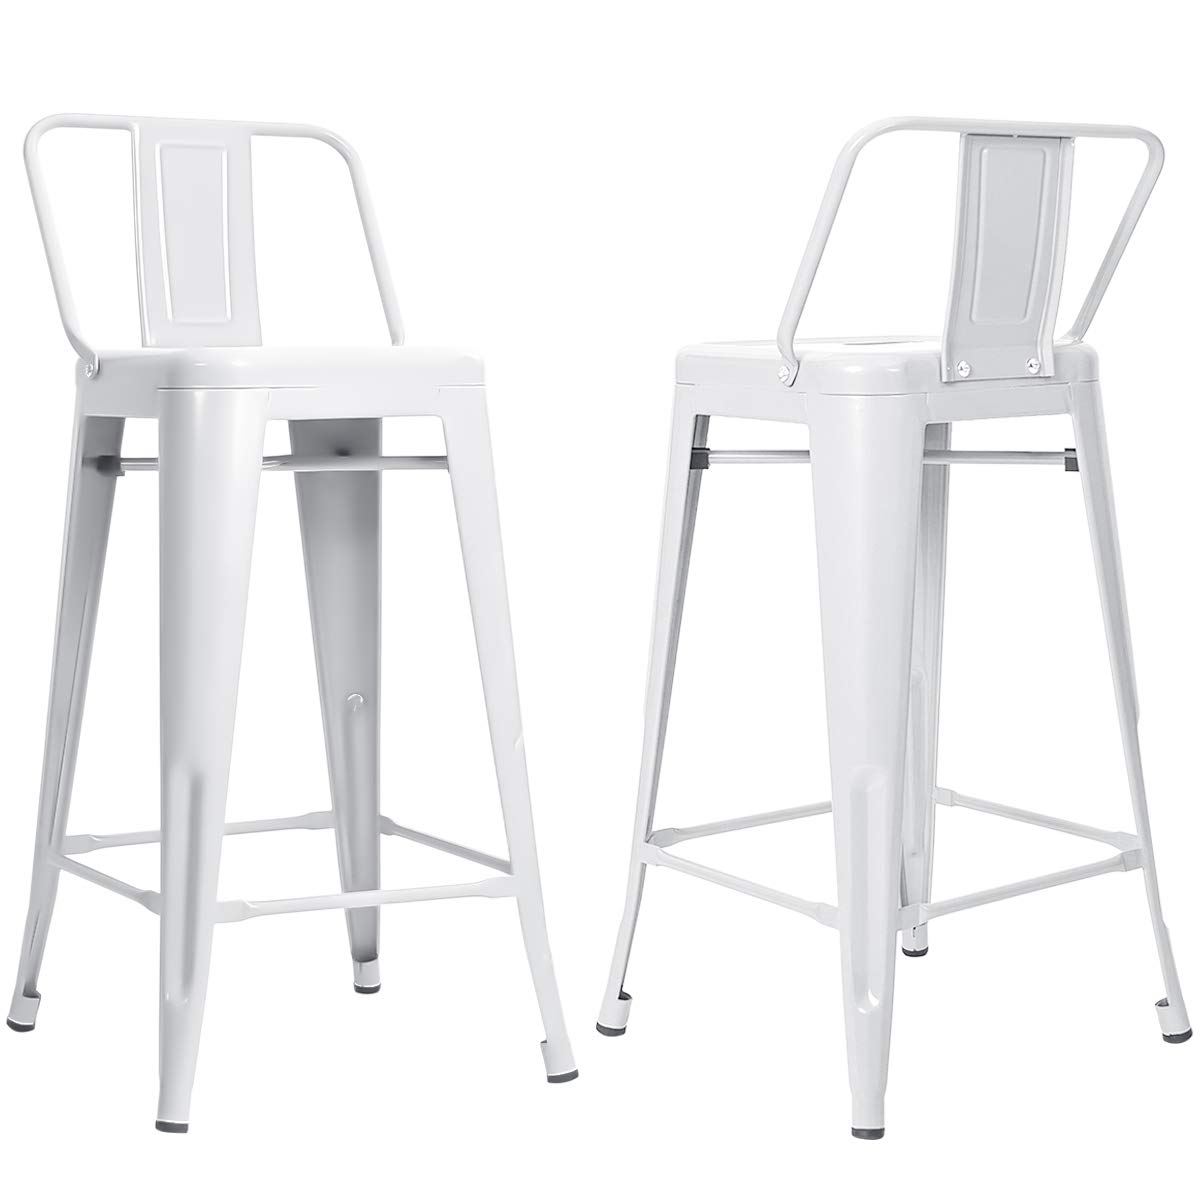 MOOSENG 26 inch Metal Barstools Set of 2 Indoor with Low Back Counter Height Stool Kitchen Dining Side Bar Chairs, White-2pack